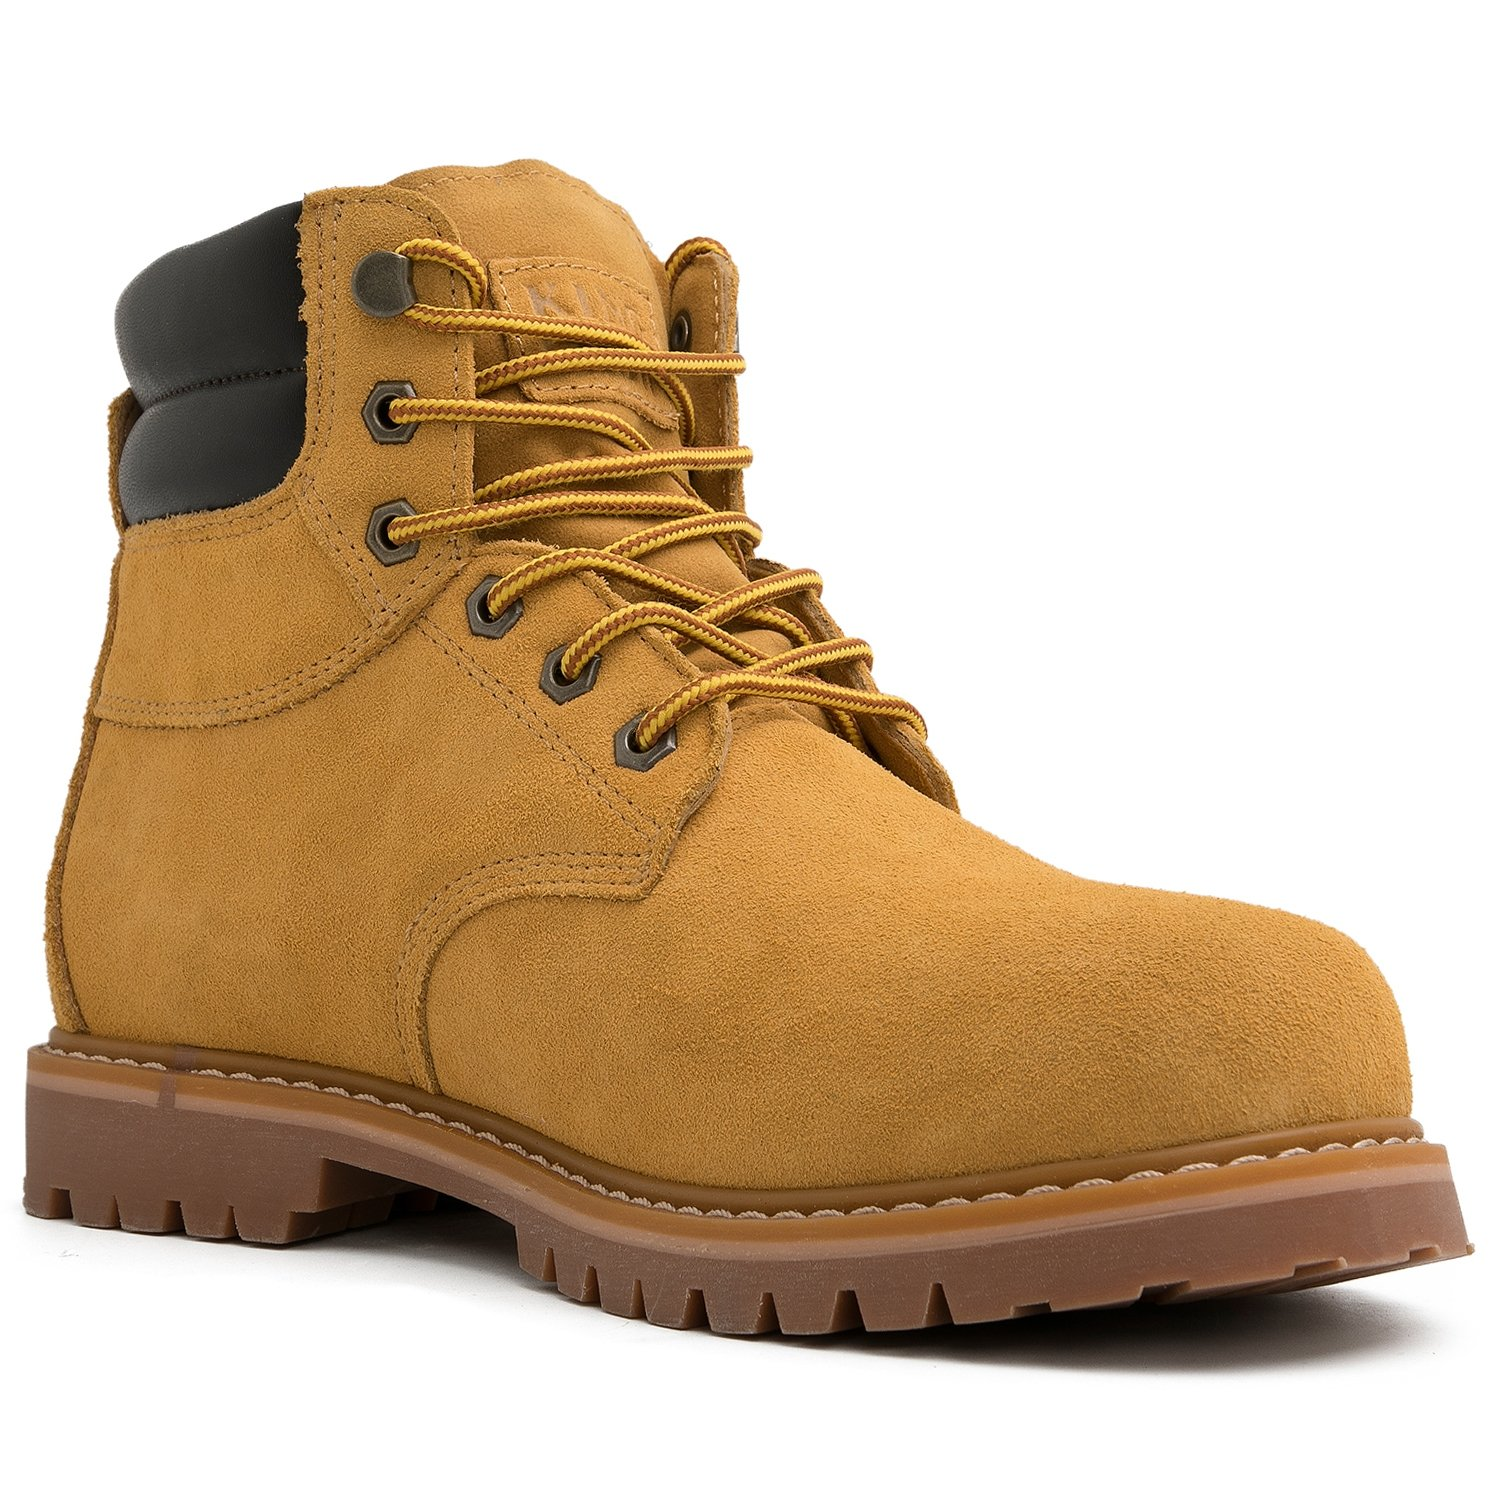 KINGSHOW Mens 1366 Water Resistant Premium Work Boots KS-1801